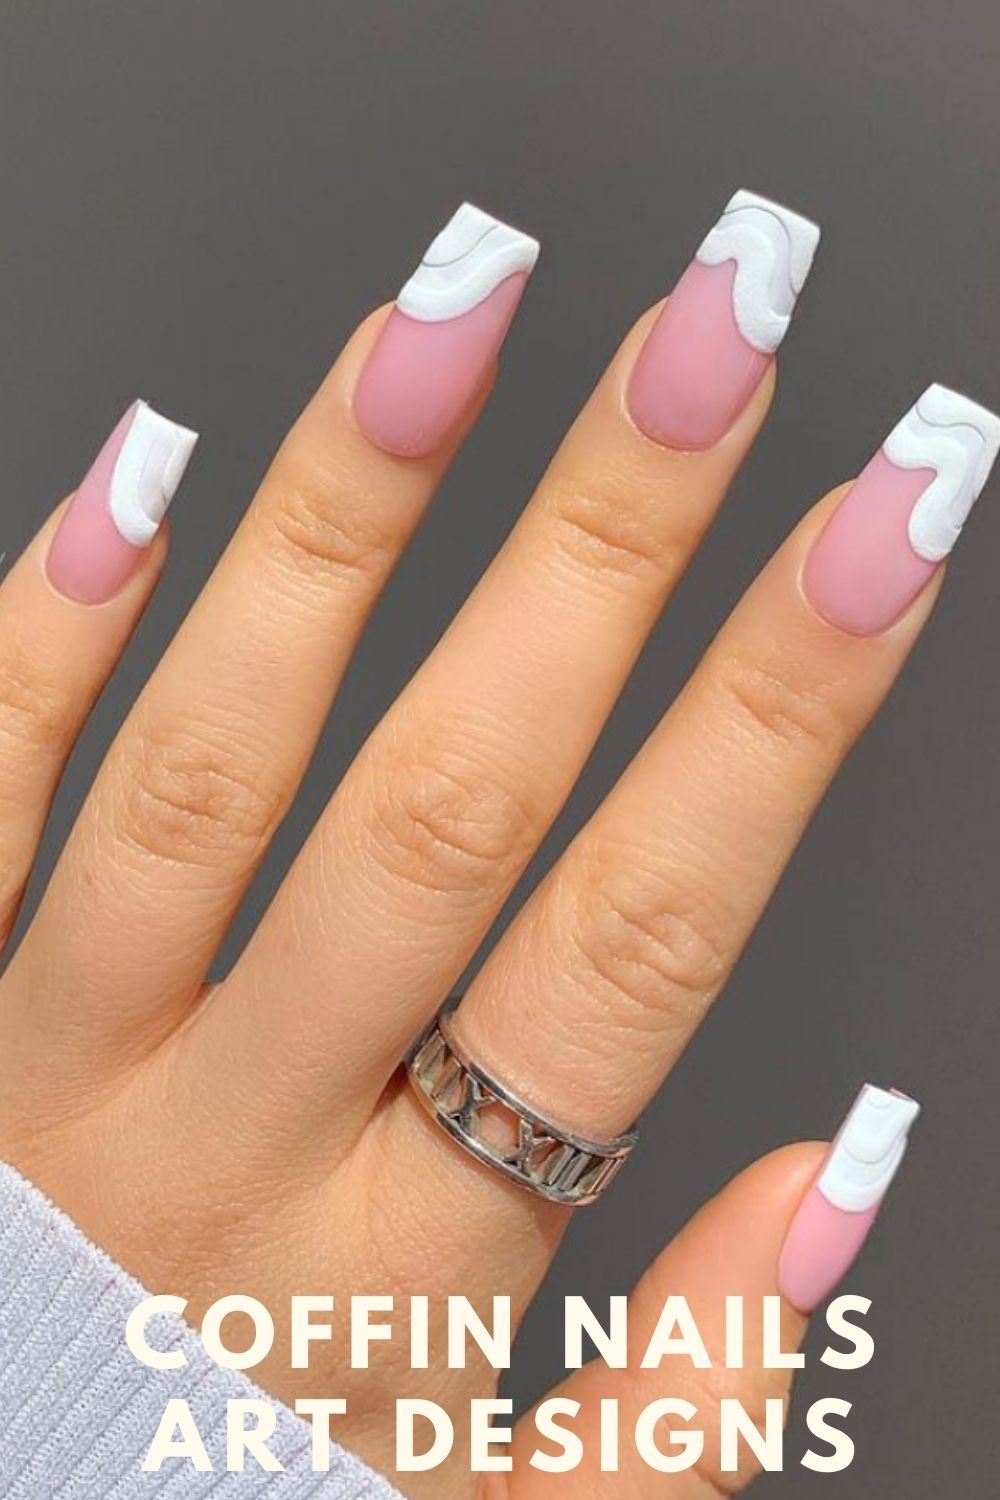 White and pink coffin nails designs